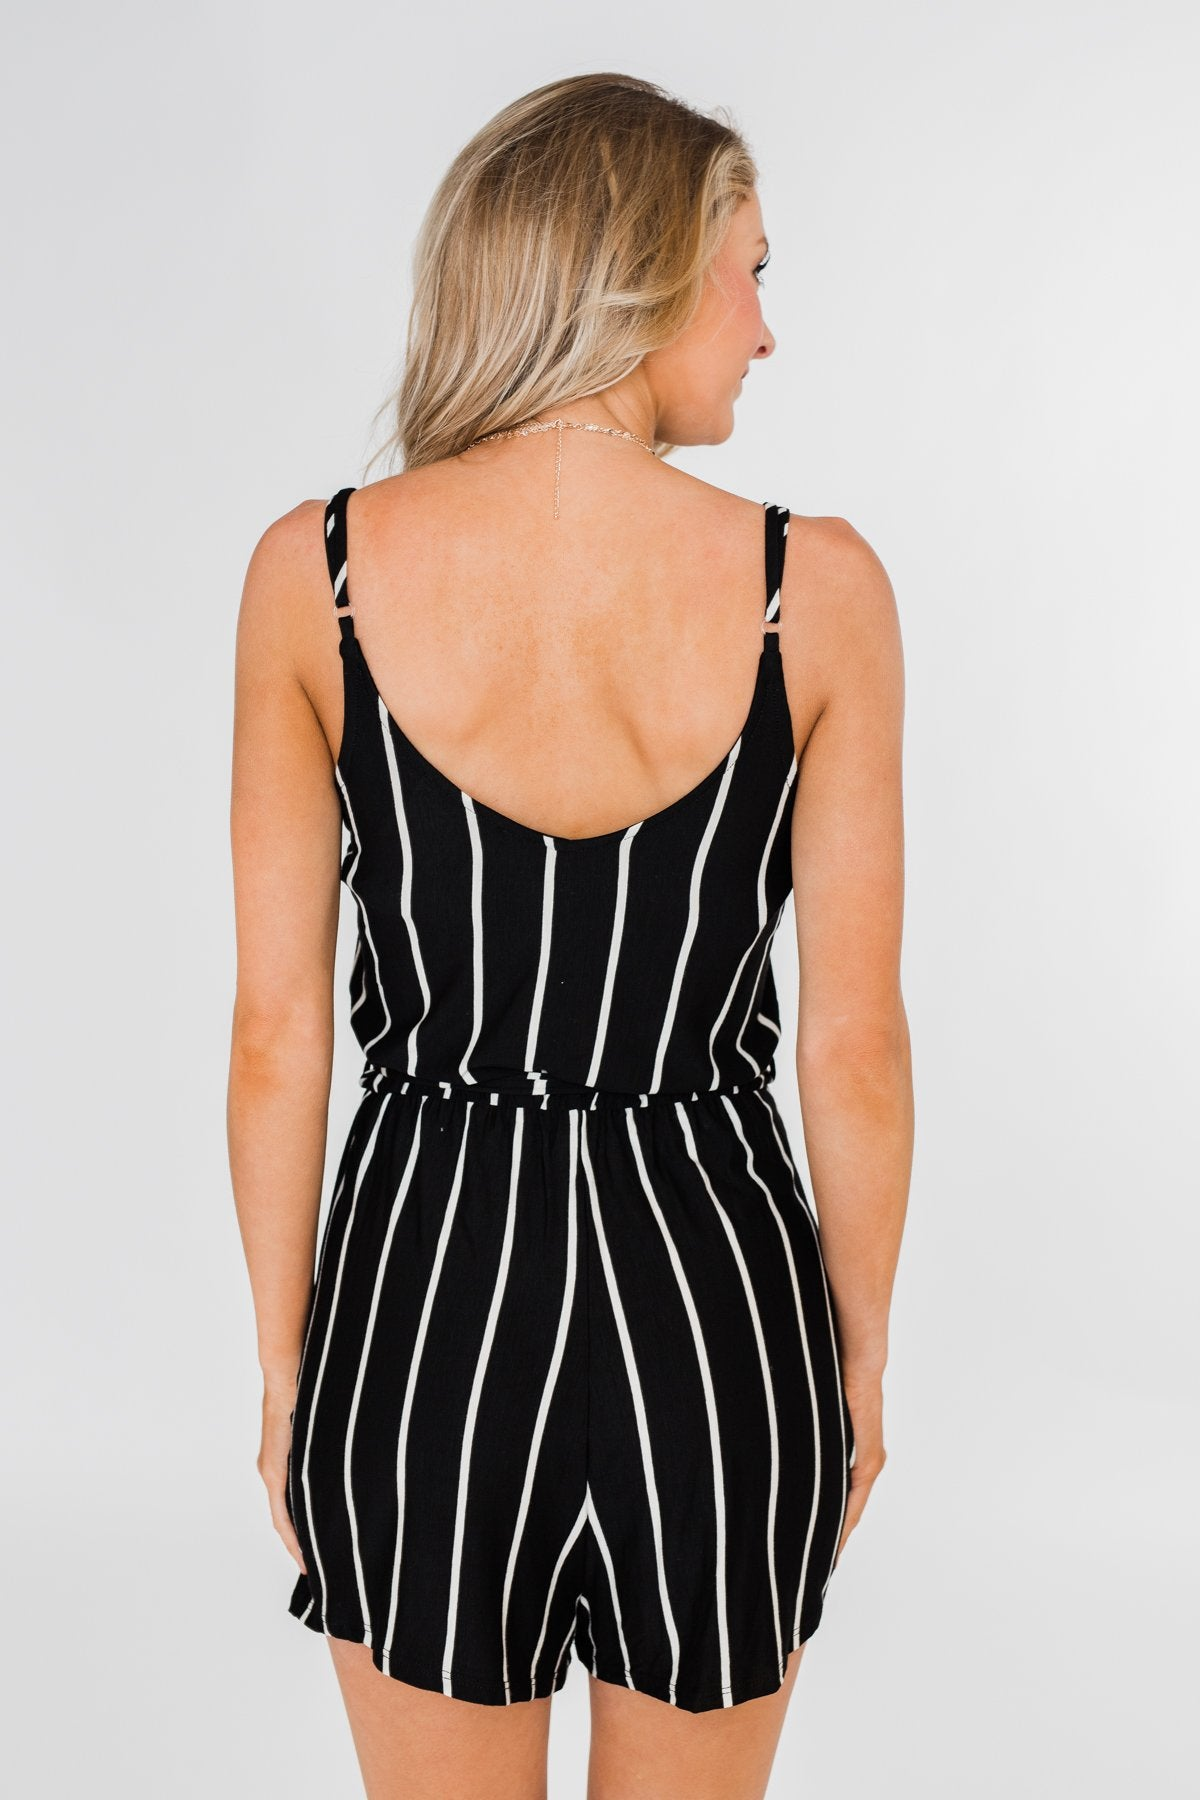 Ready to Go Striped Romper- Black & White